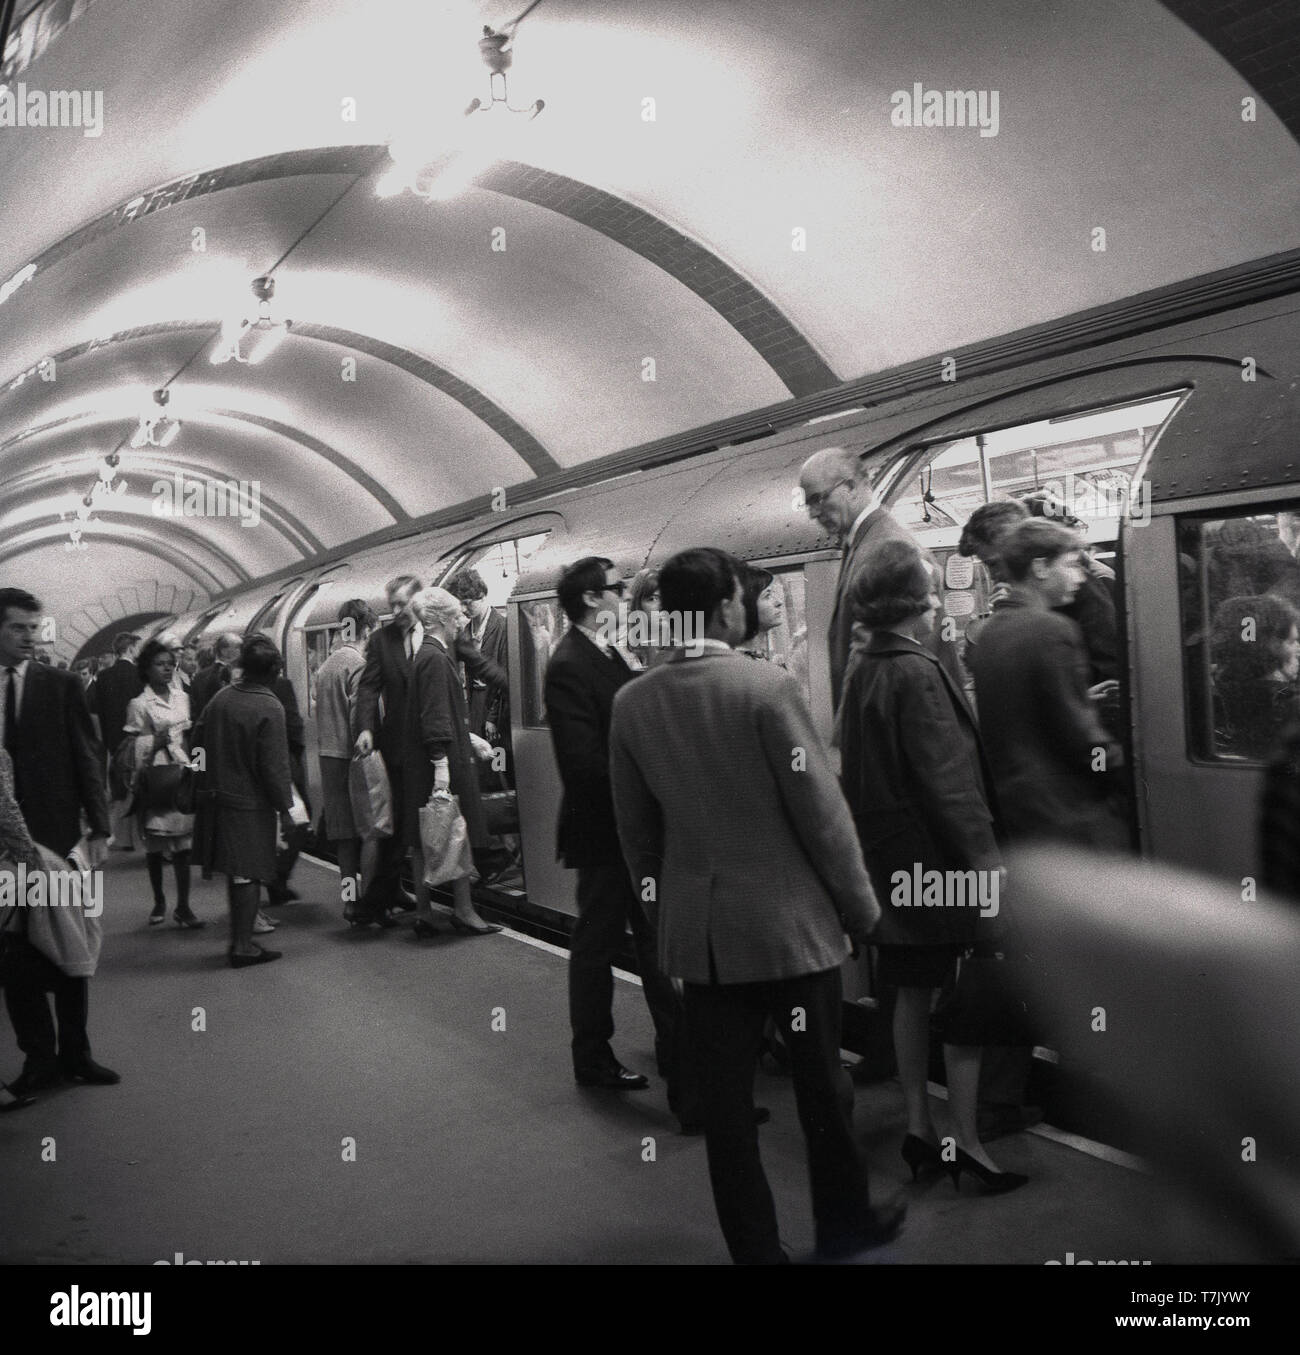 1960s, historical, London Underground, a tube train at a platform, people getting on and off the train, London, England, UK. The orgins of the London Underground lie in the Metropolitan Railway, the world's first underground passenger railway opened in 1863. Gas-lit wooden carriages were hauled by steam locomotives, - Stock Image